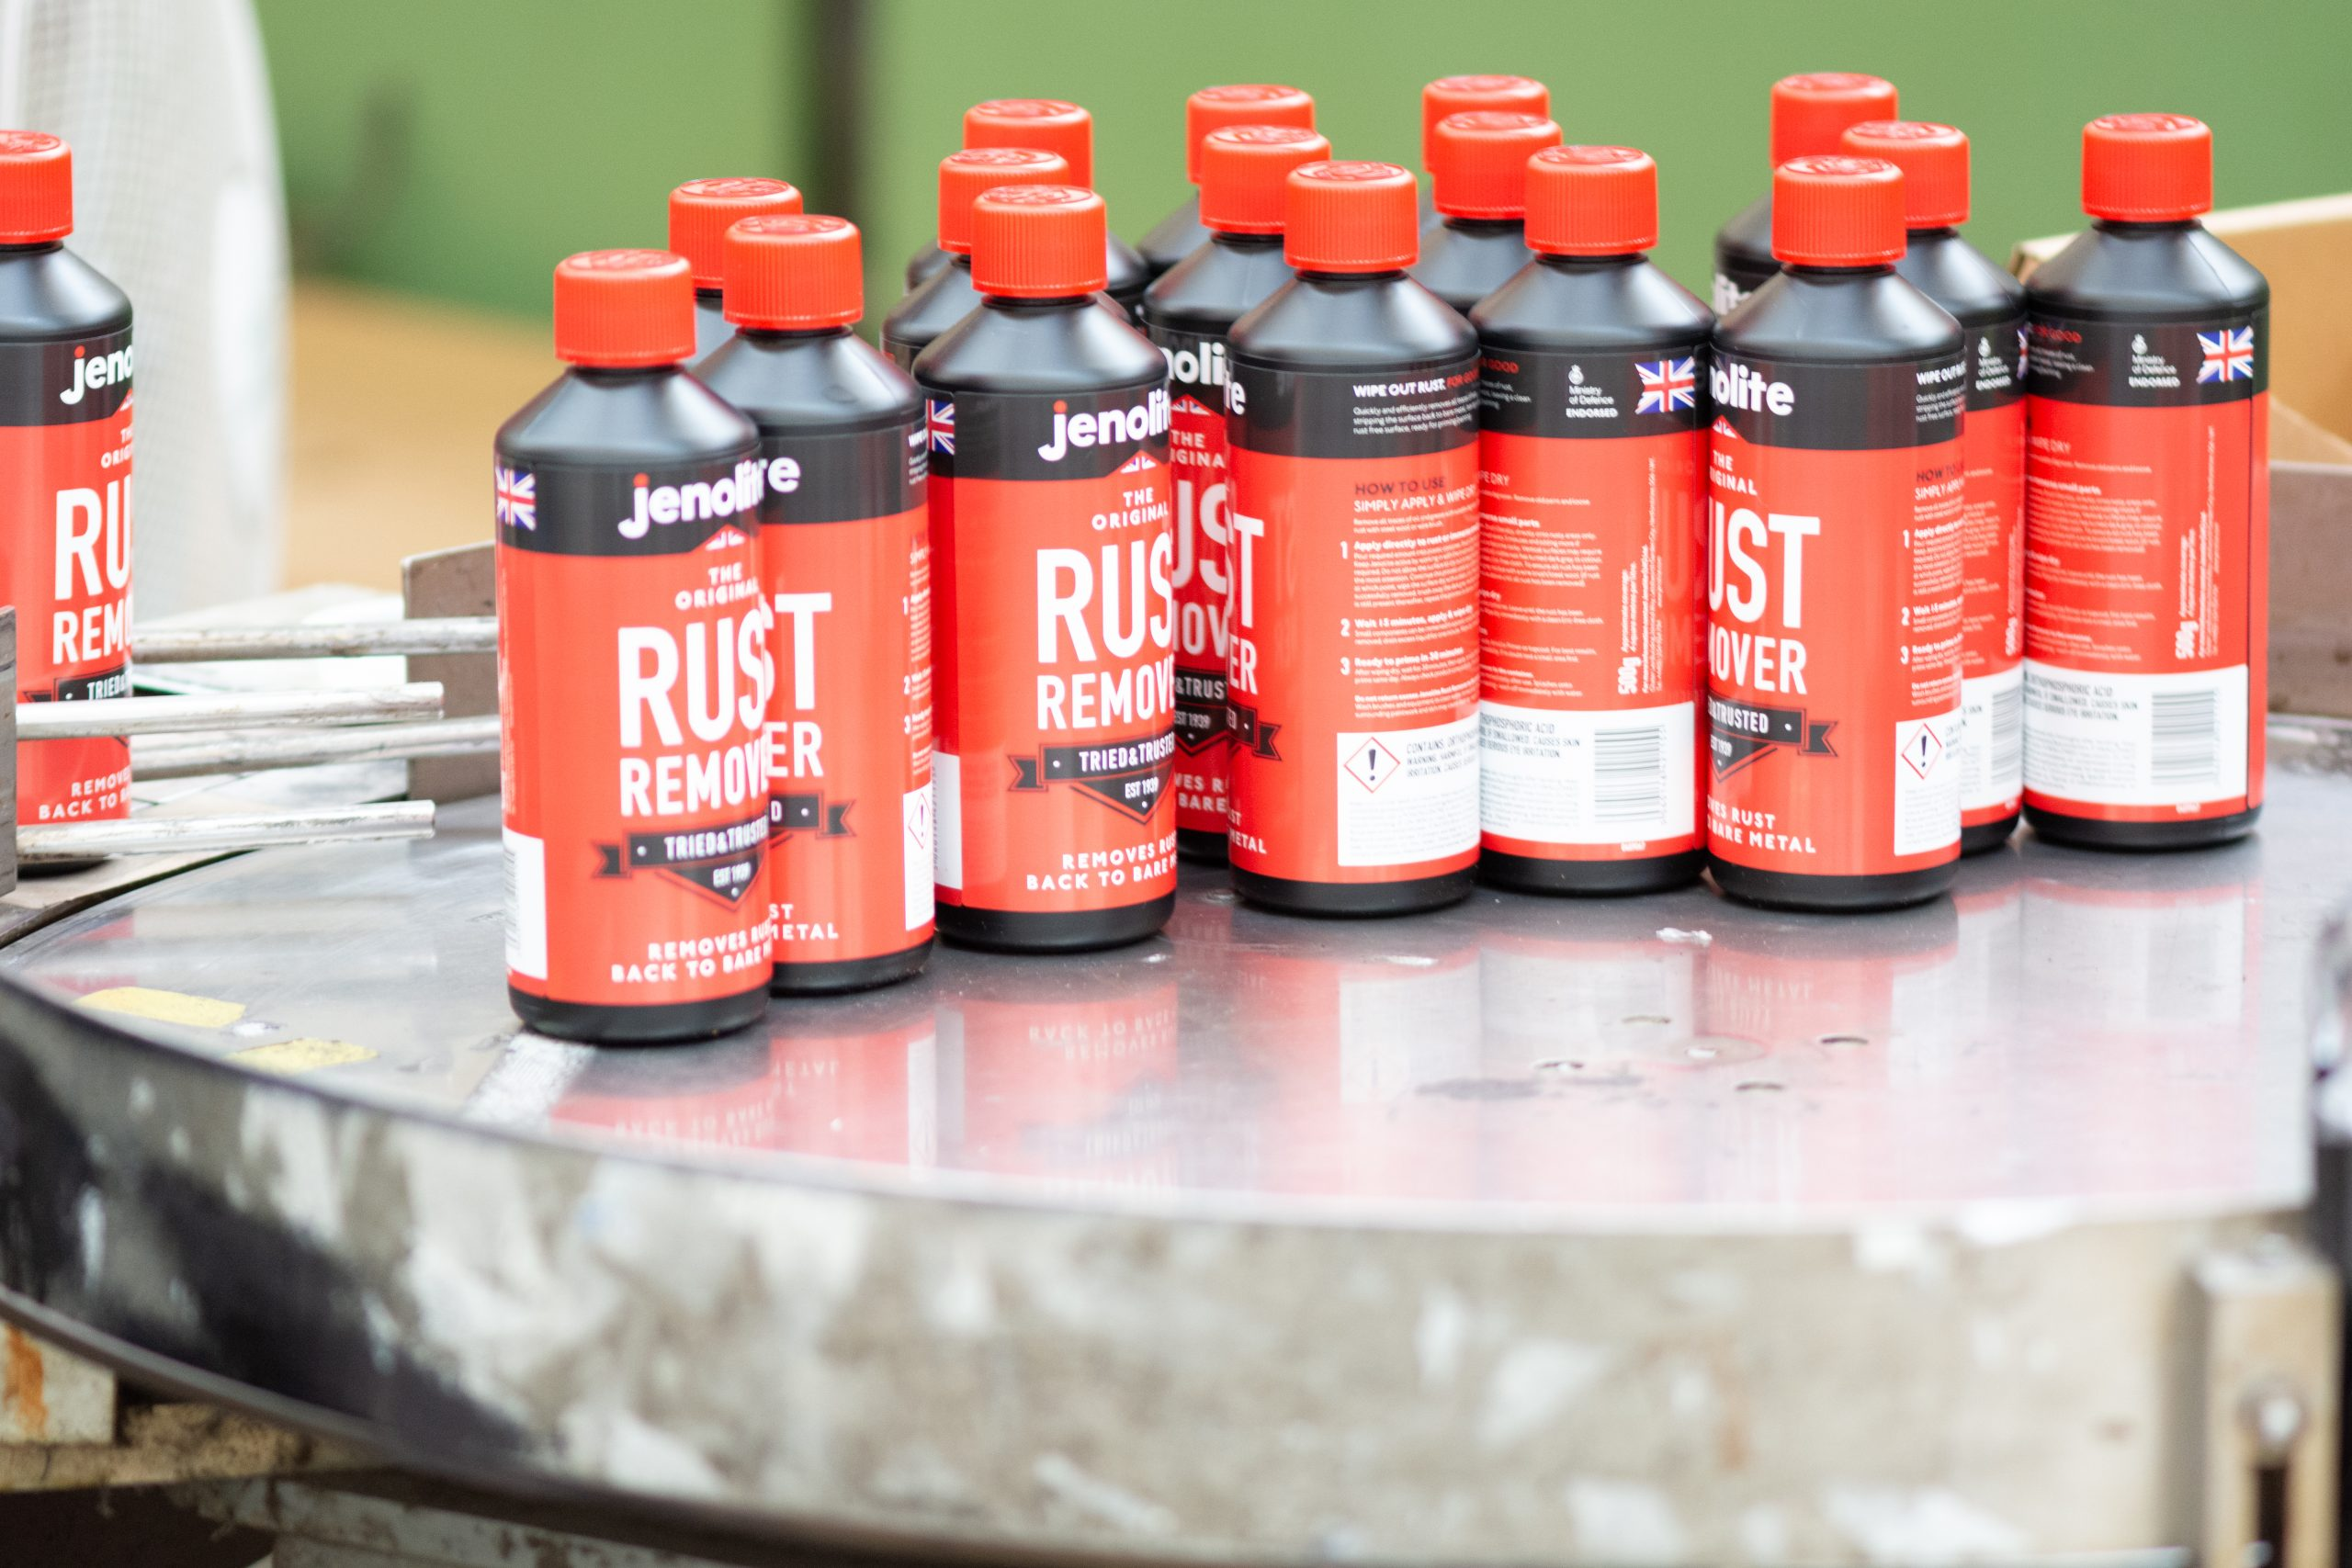 Rust removal products being prepared for retail sale | Cedesa